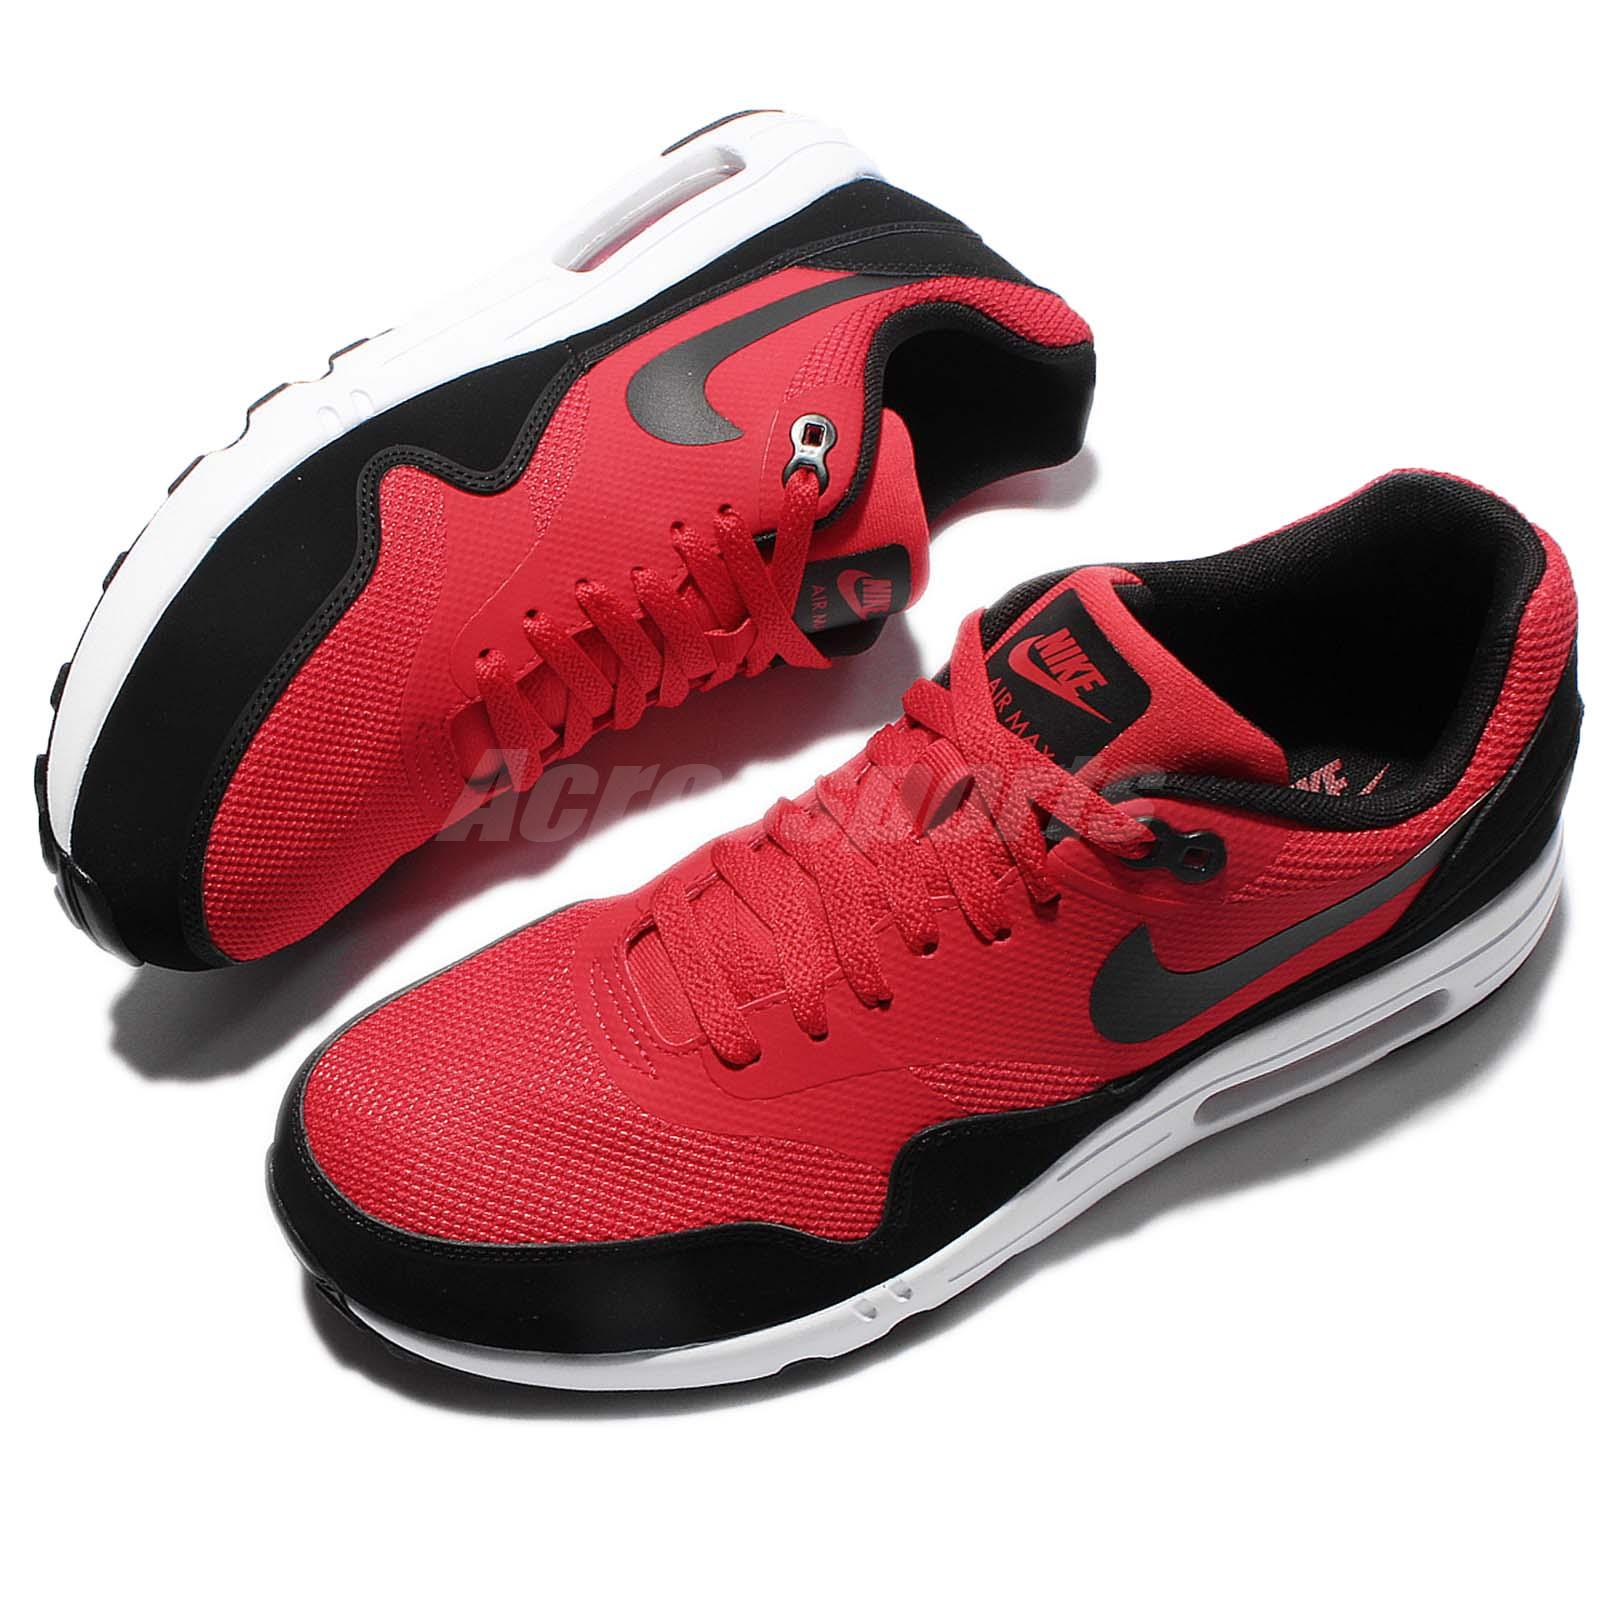 hot sale online 0c582 5cfe9 Details about Nike Air Max 1 Ultra 2.0 Essential Red Black Men Running Shoe  Sneaker 875679-600